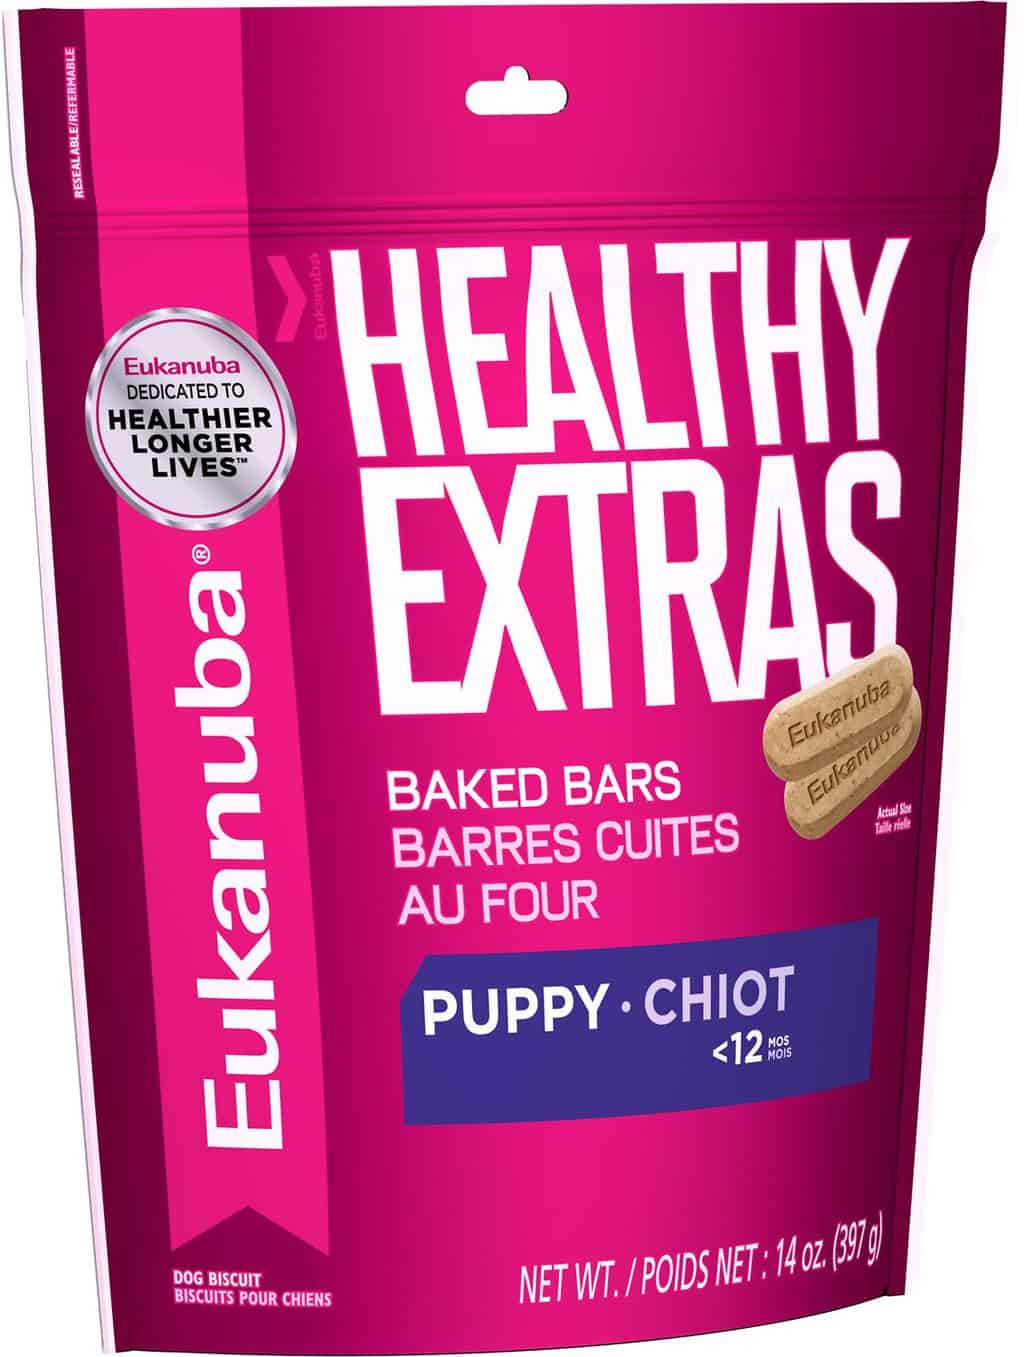 Eukanuba Dog Food: 2020 Review, Recalls & Coupons 15